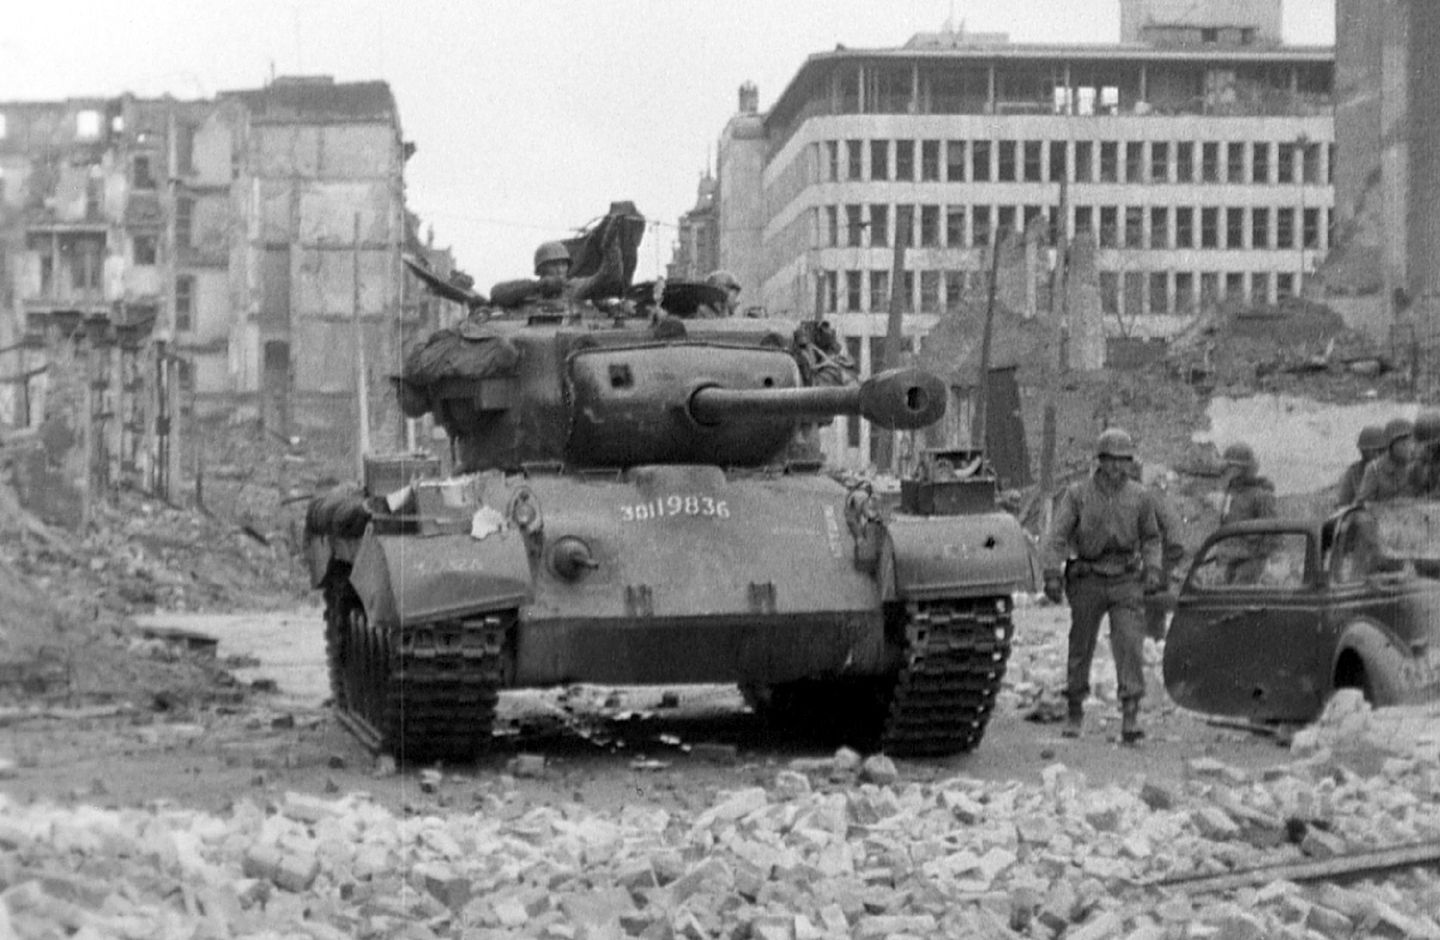 This shot shows Smoyer's Pershing tank in Cologne on March 6, 1945.